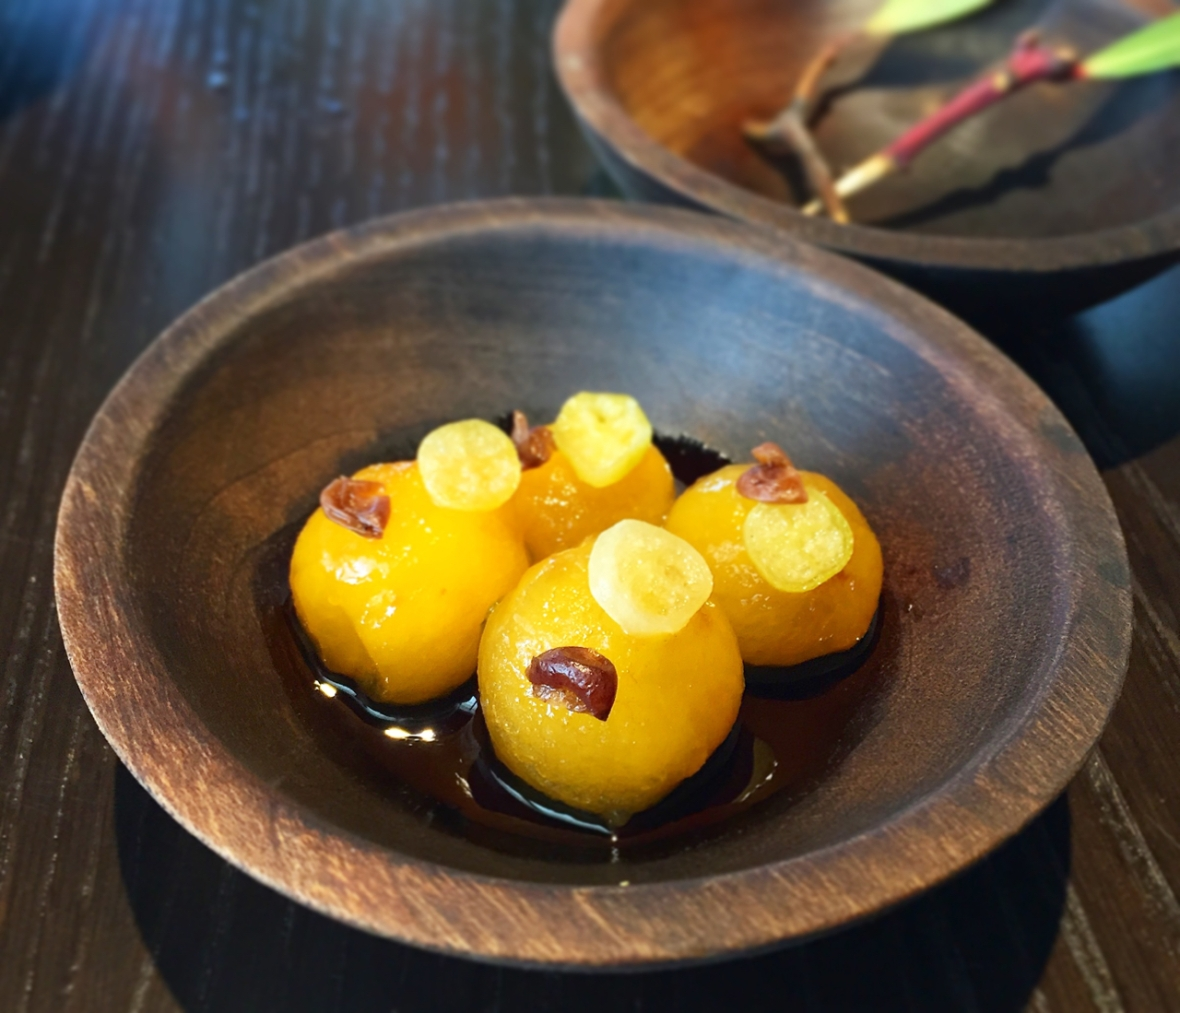 Noma Native Mirabelle Plums